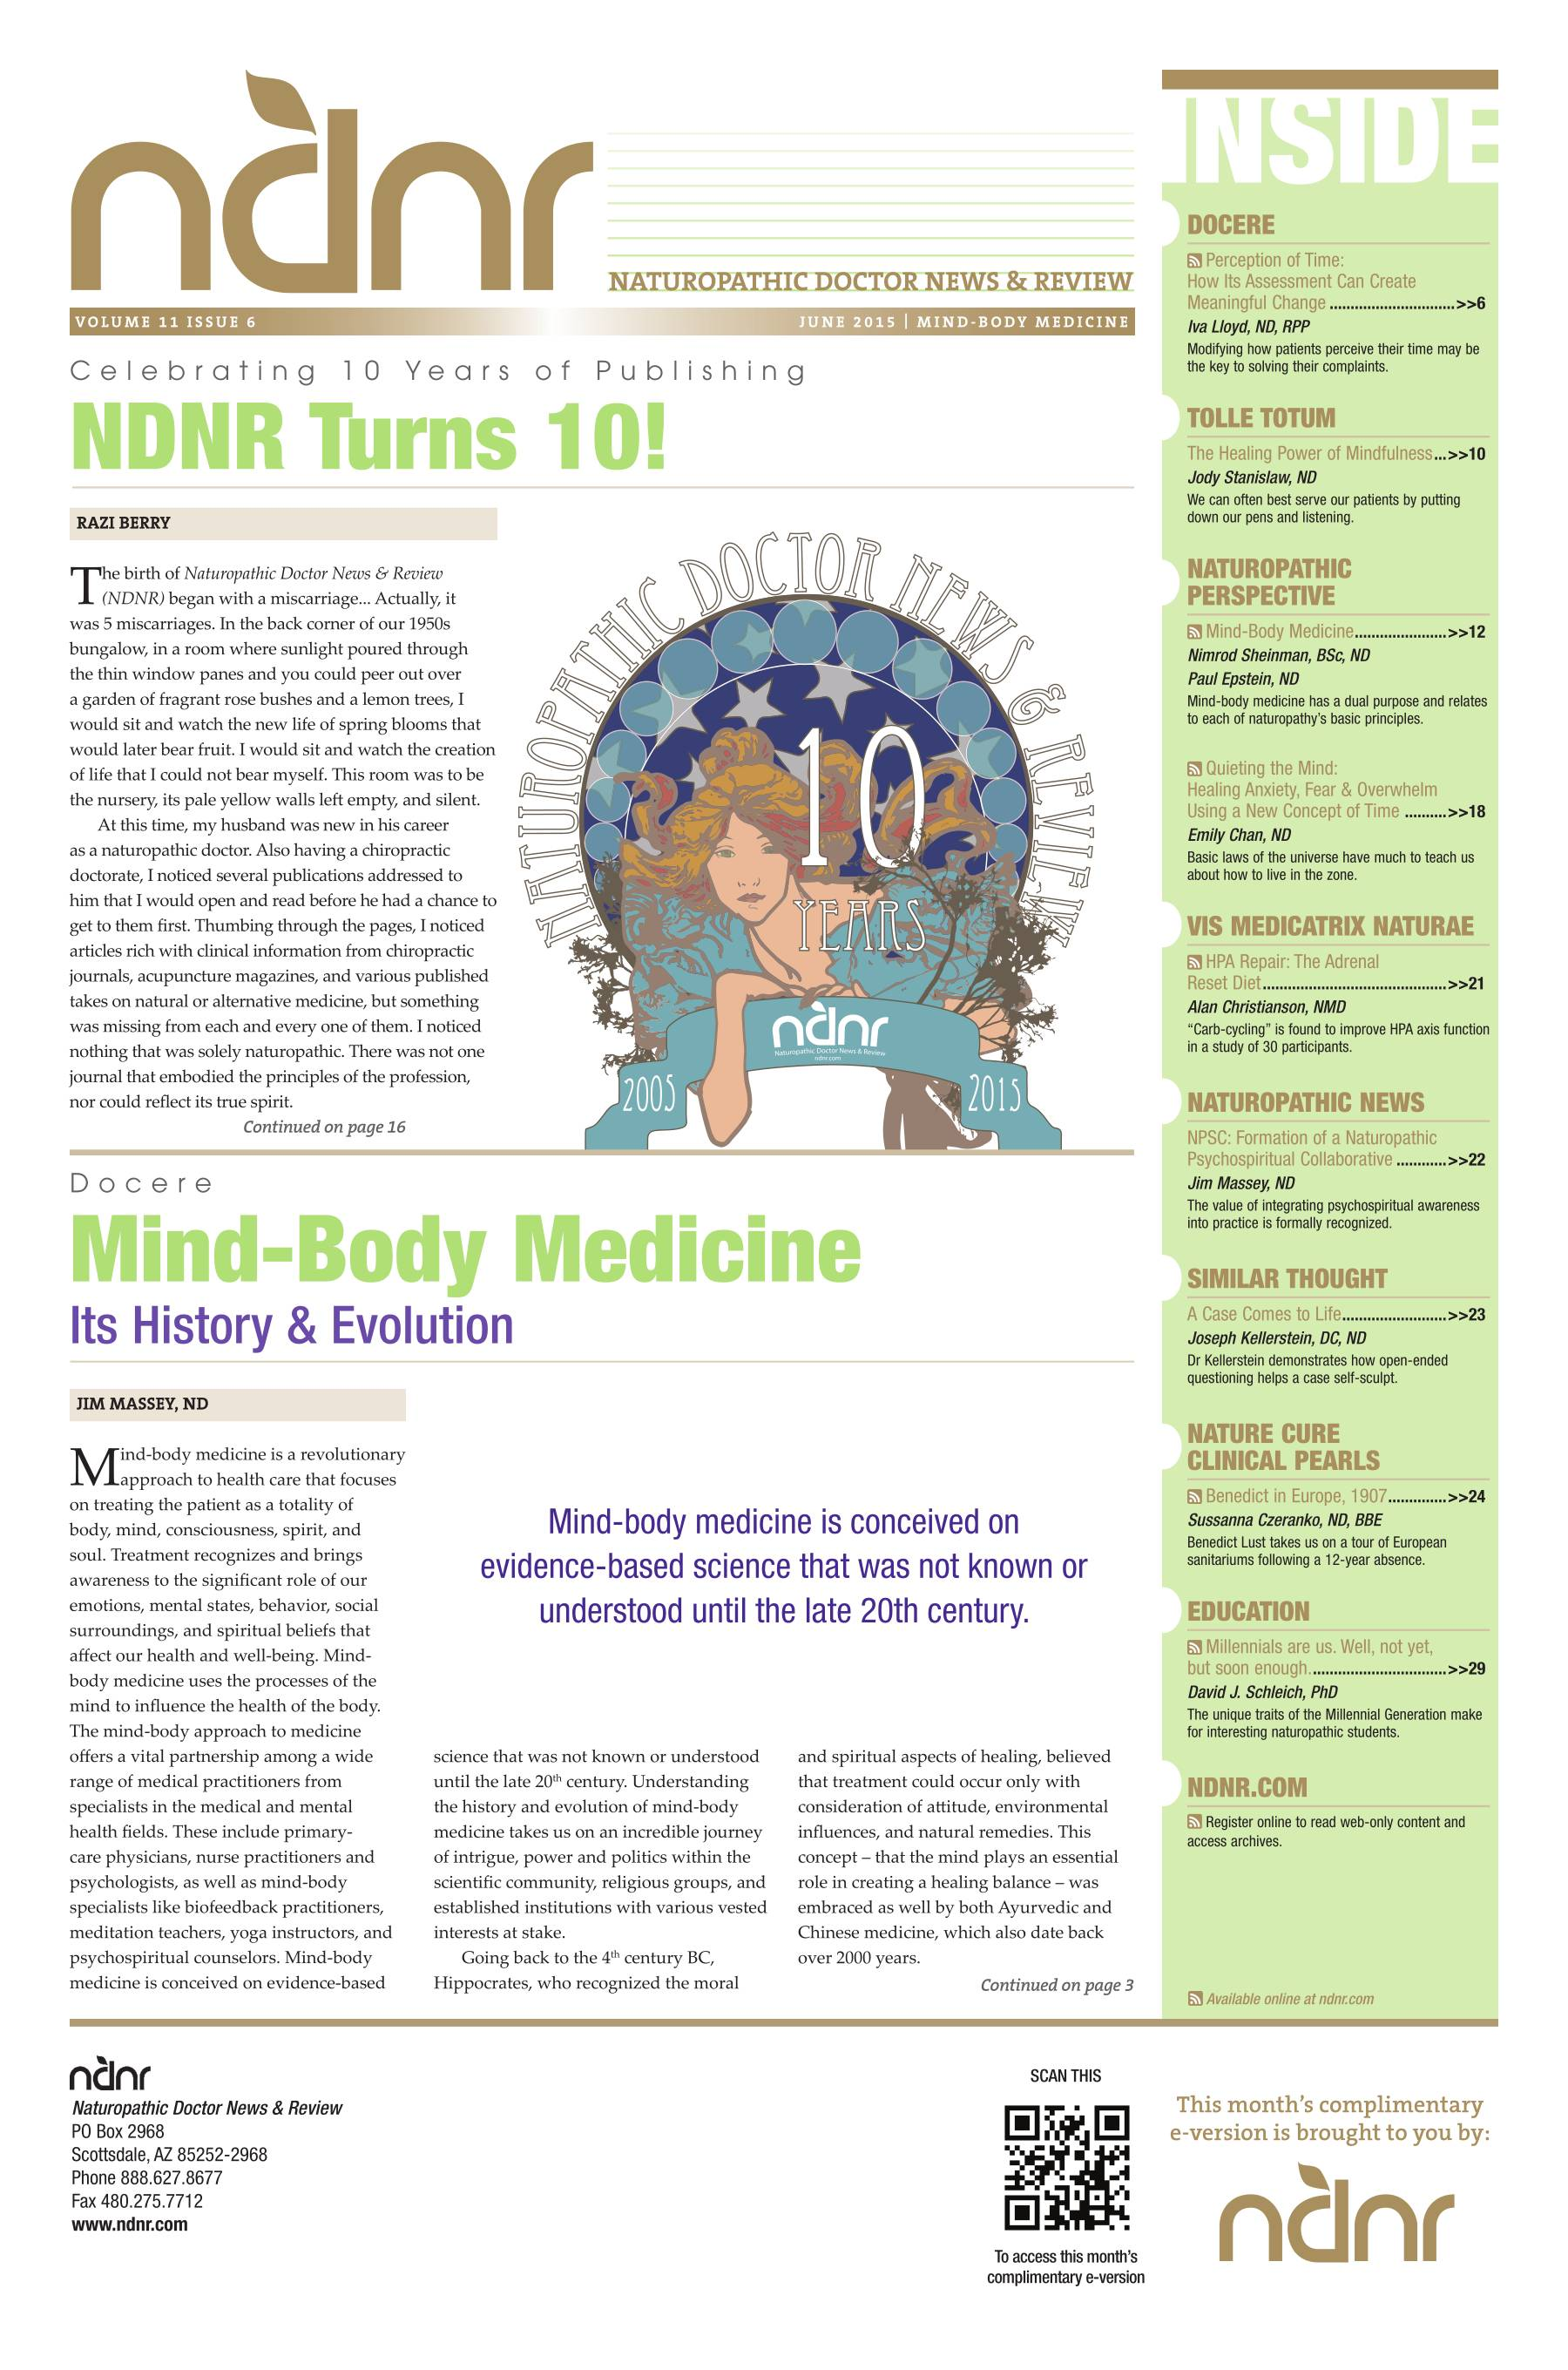 Naturopathic Doctor News And Review The Voice Of Naturopathic Medicine